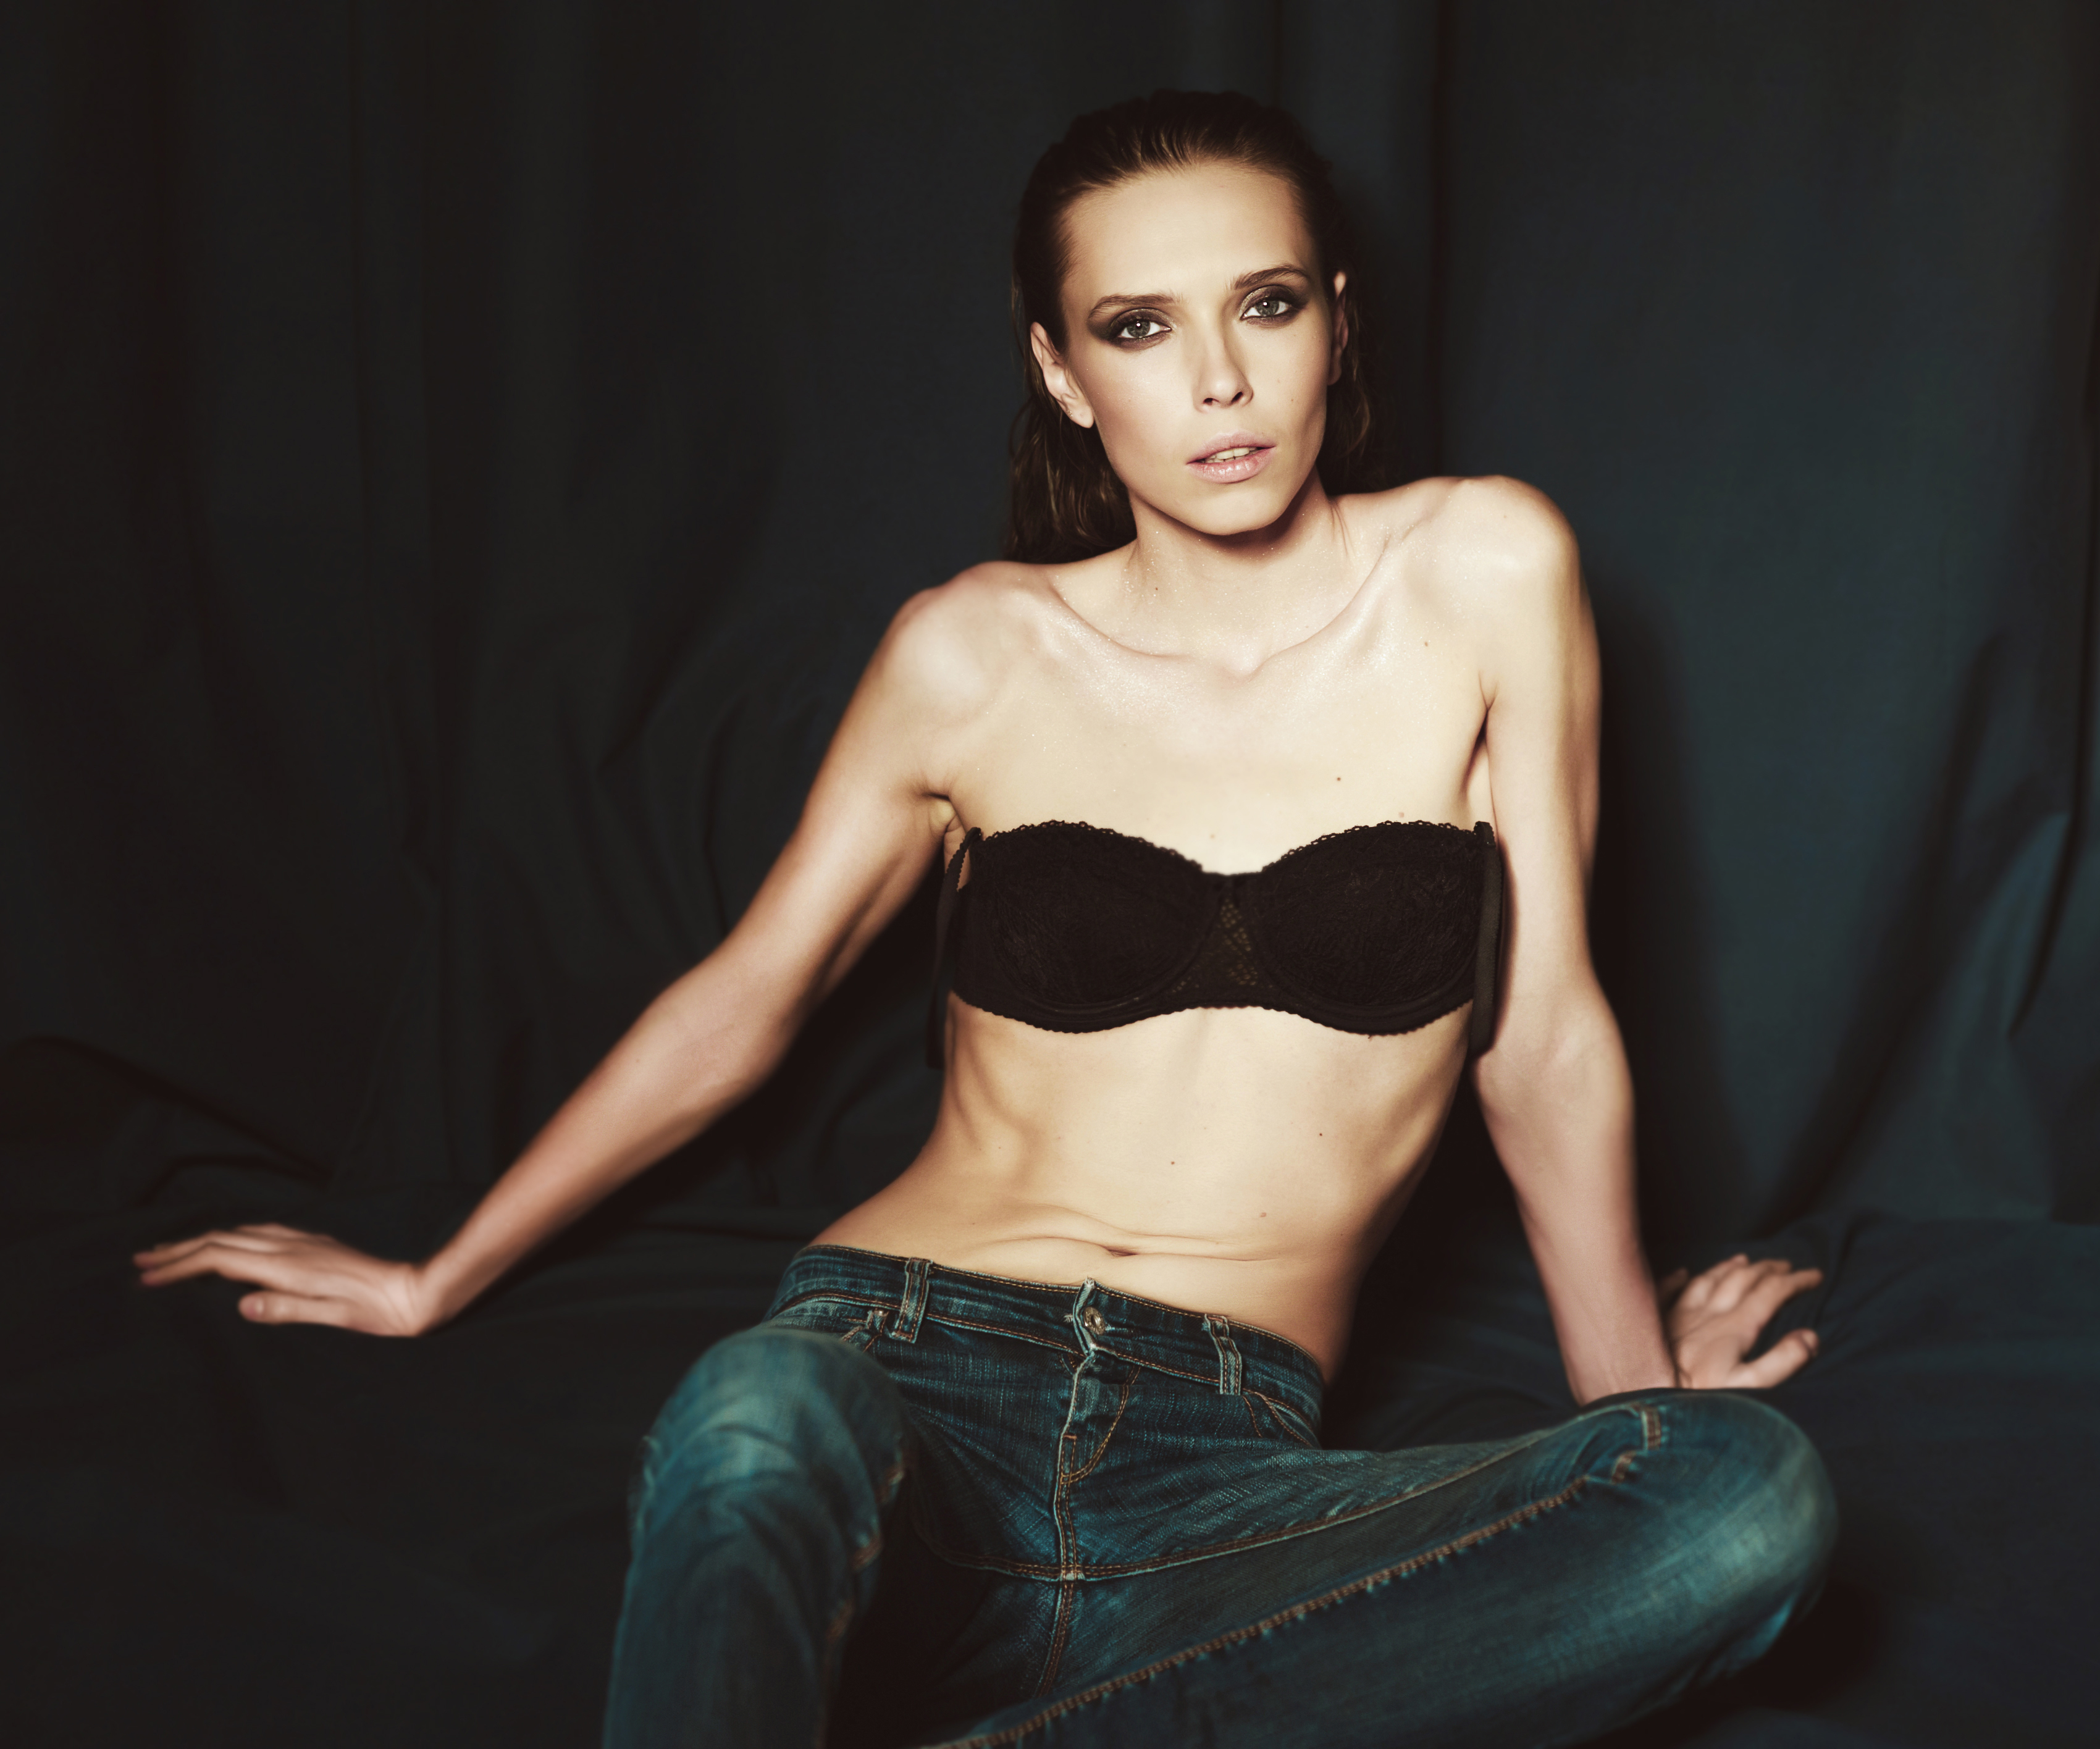 Anorexiaporncom  Shocking Anorexic Porn  Anorexia Girls